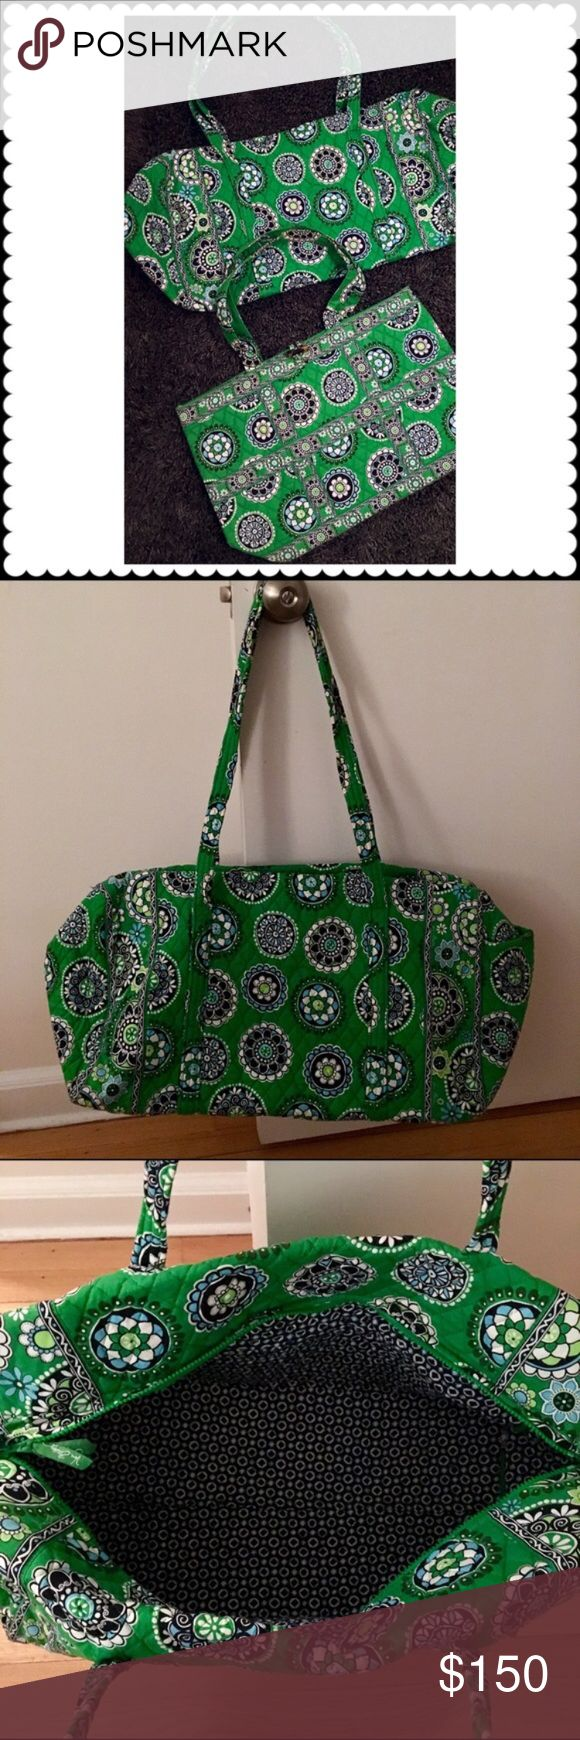 Vera bradley travel set duffle and matching tote from vera bradley perfect for travel